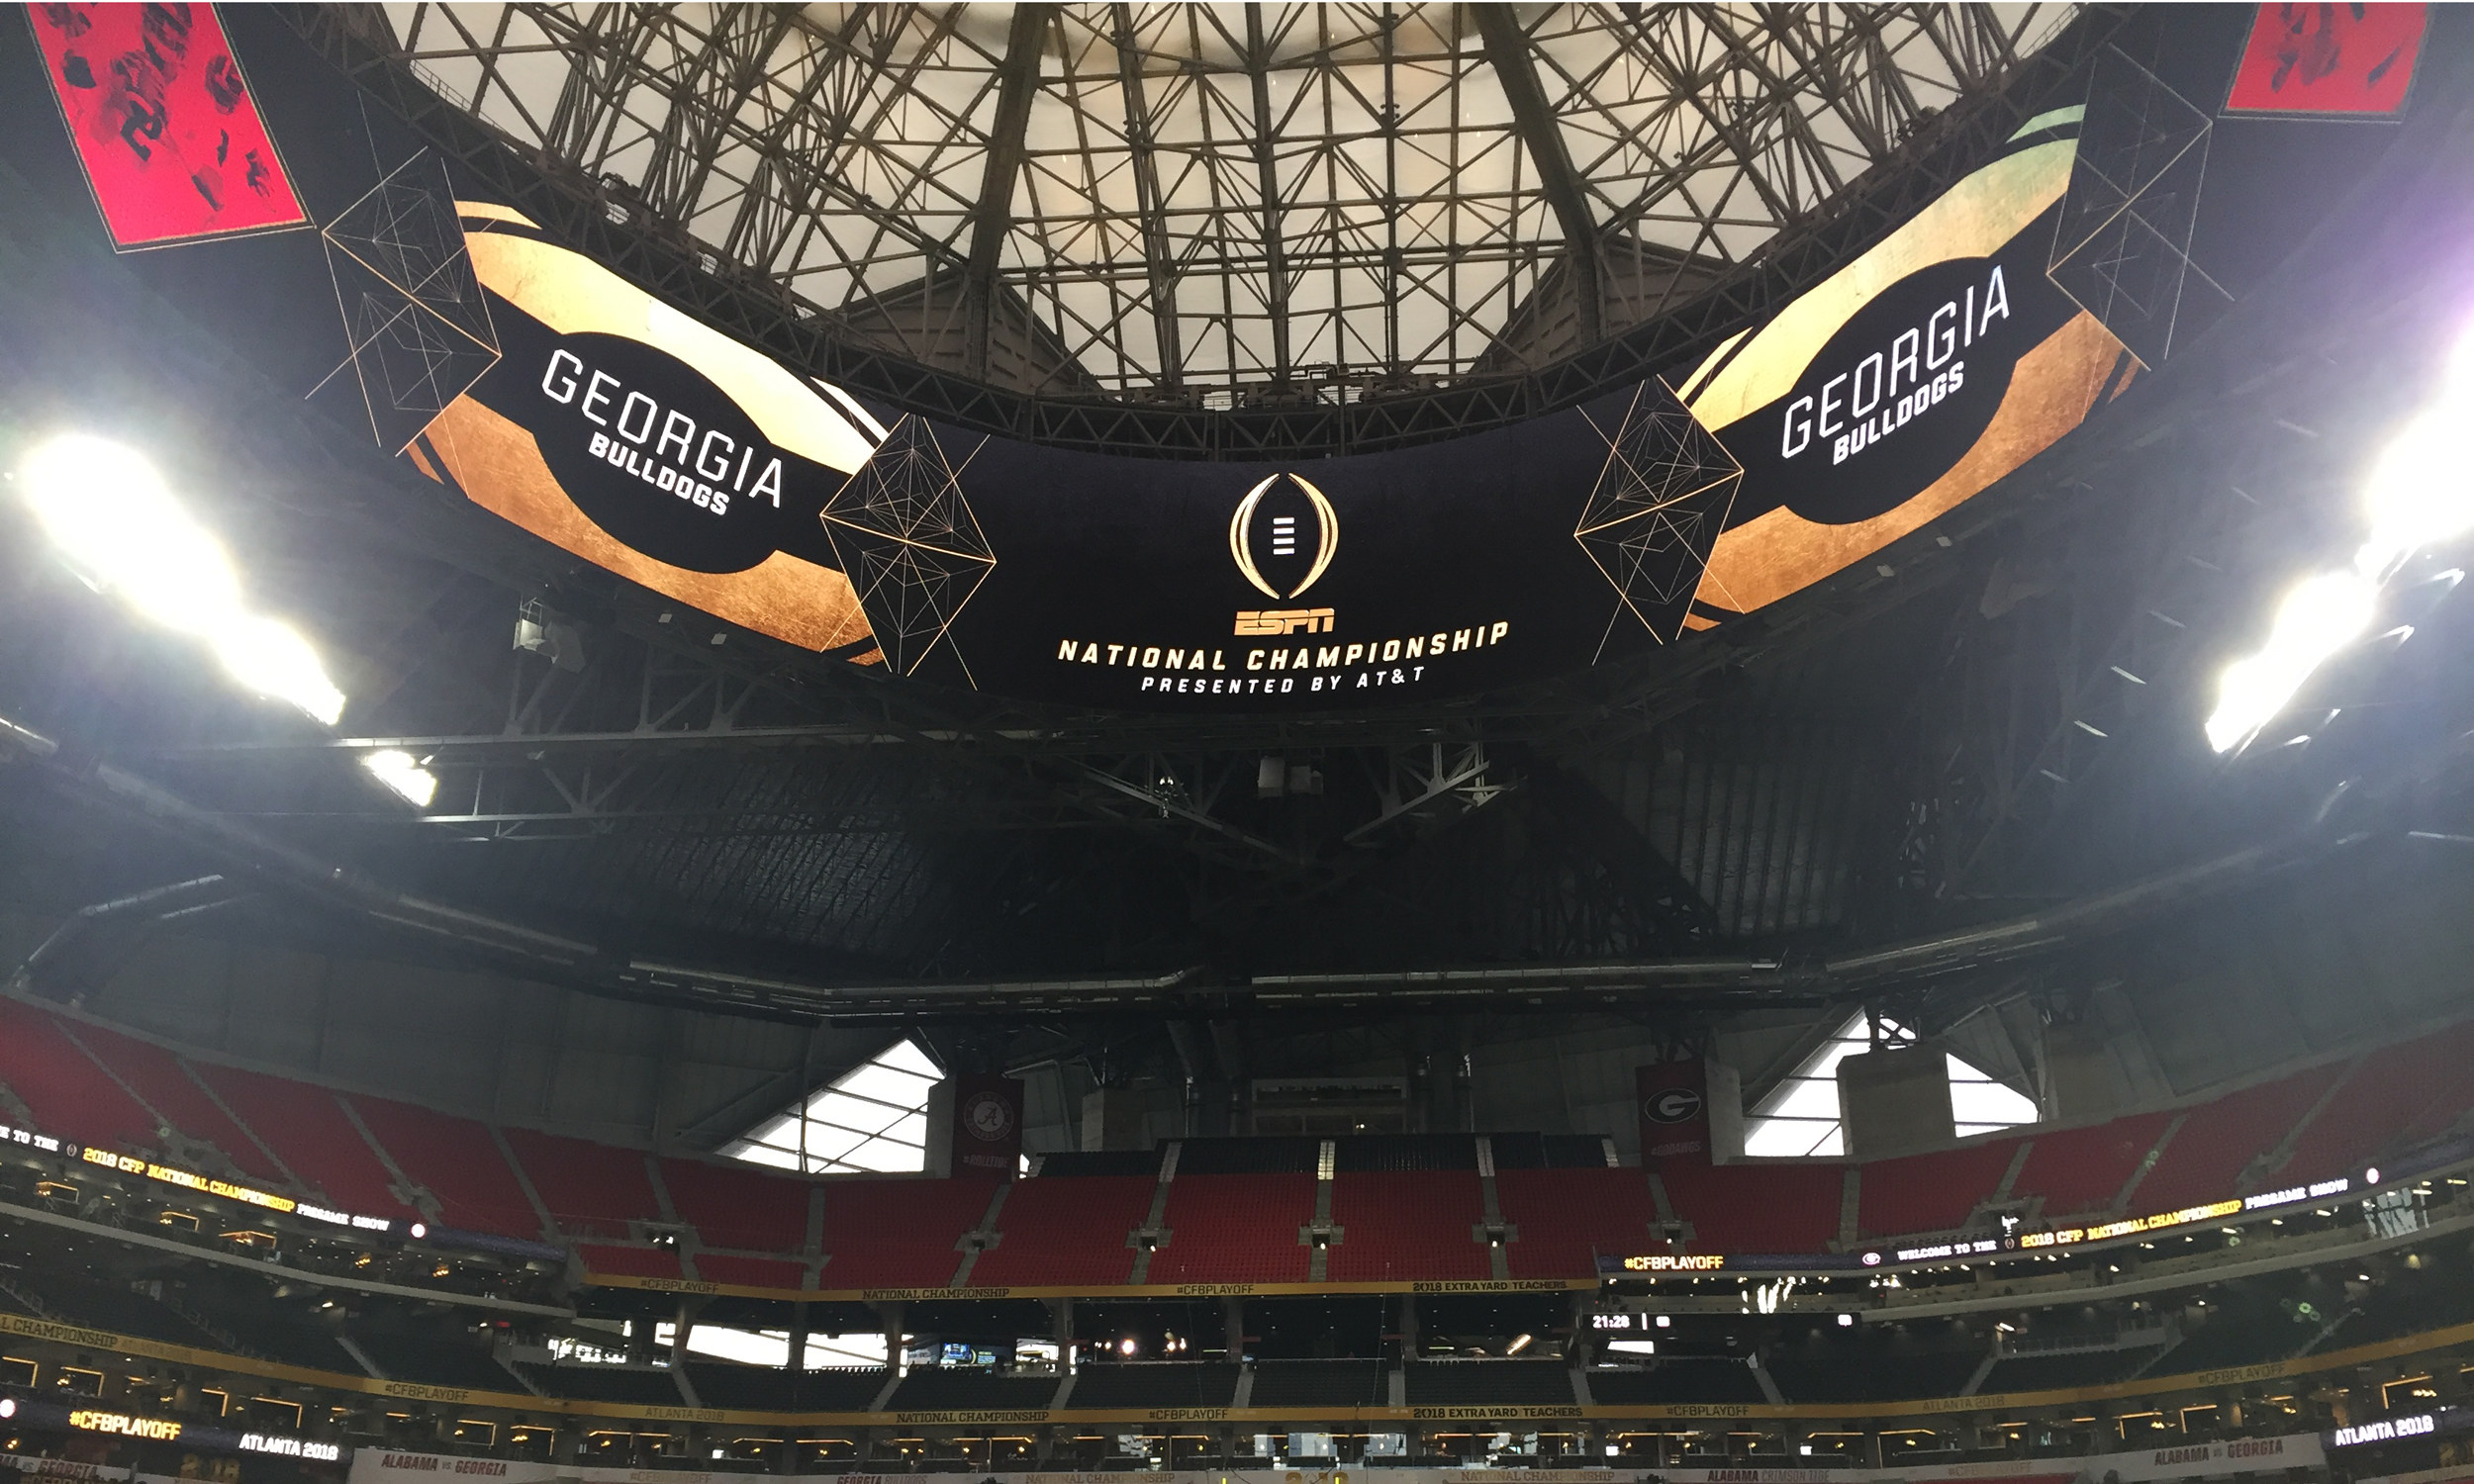 Ratings Roundup: ESPN's CFP National Championship Up 13